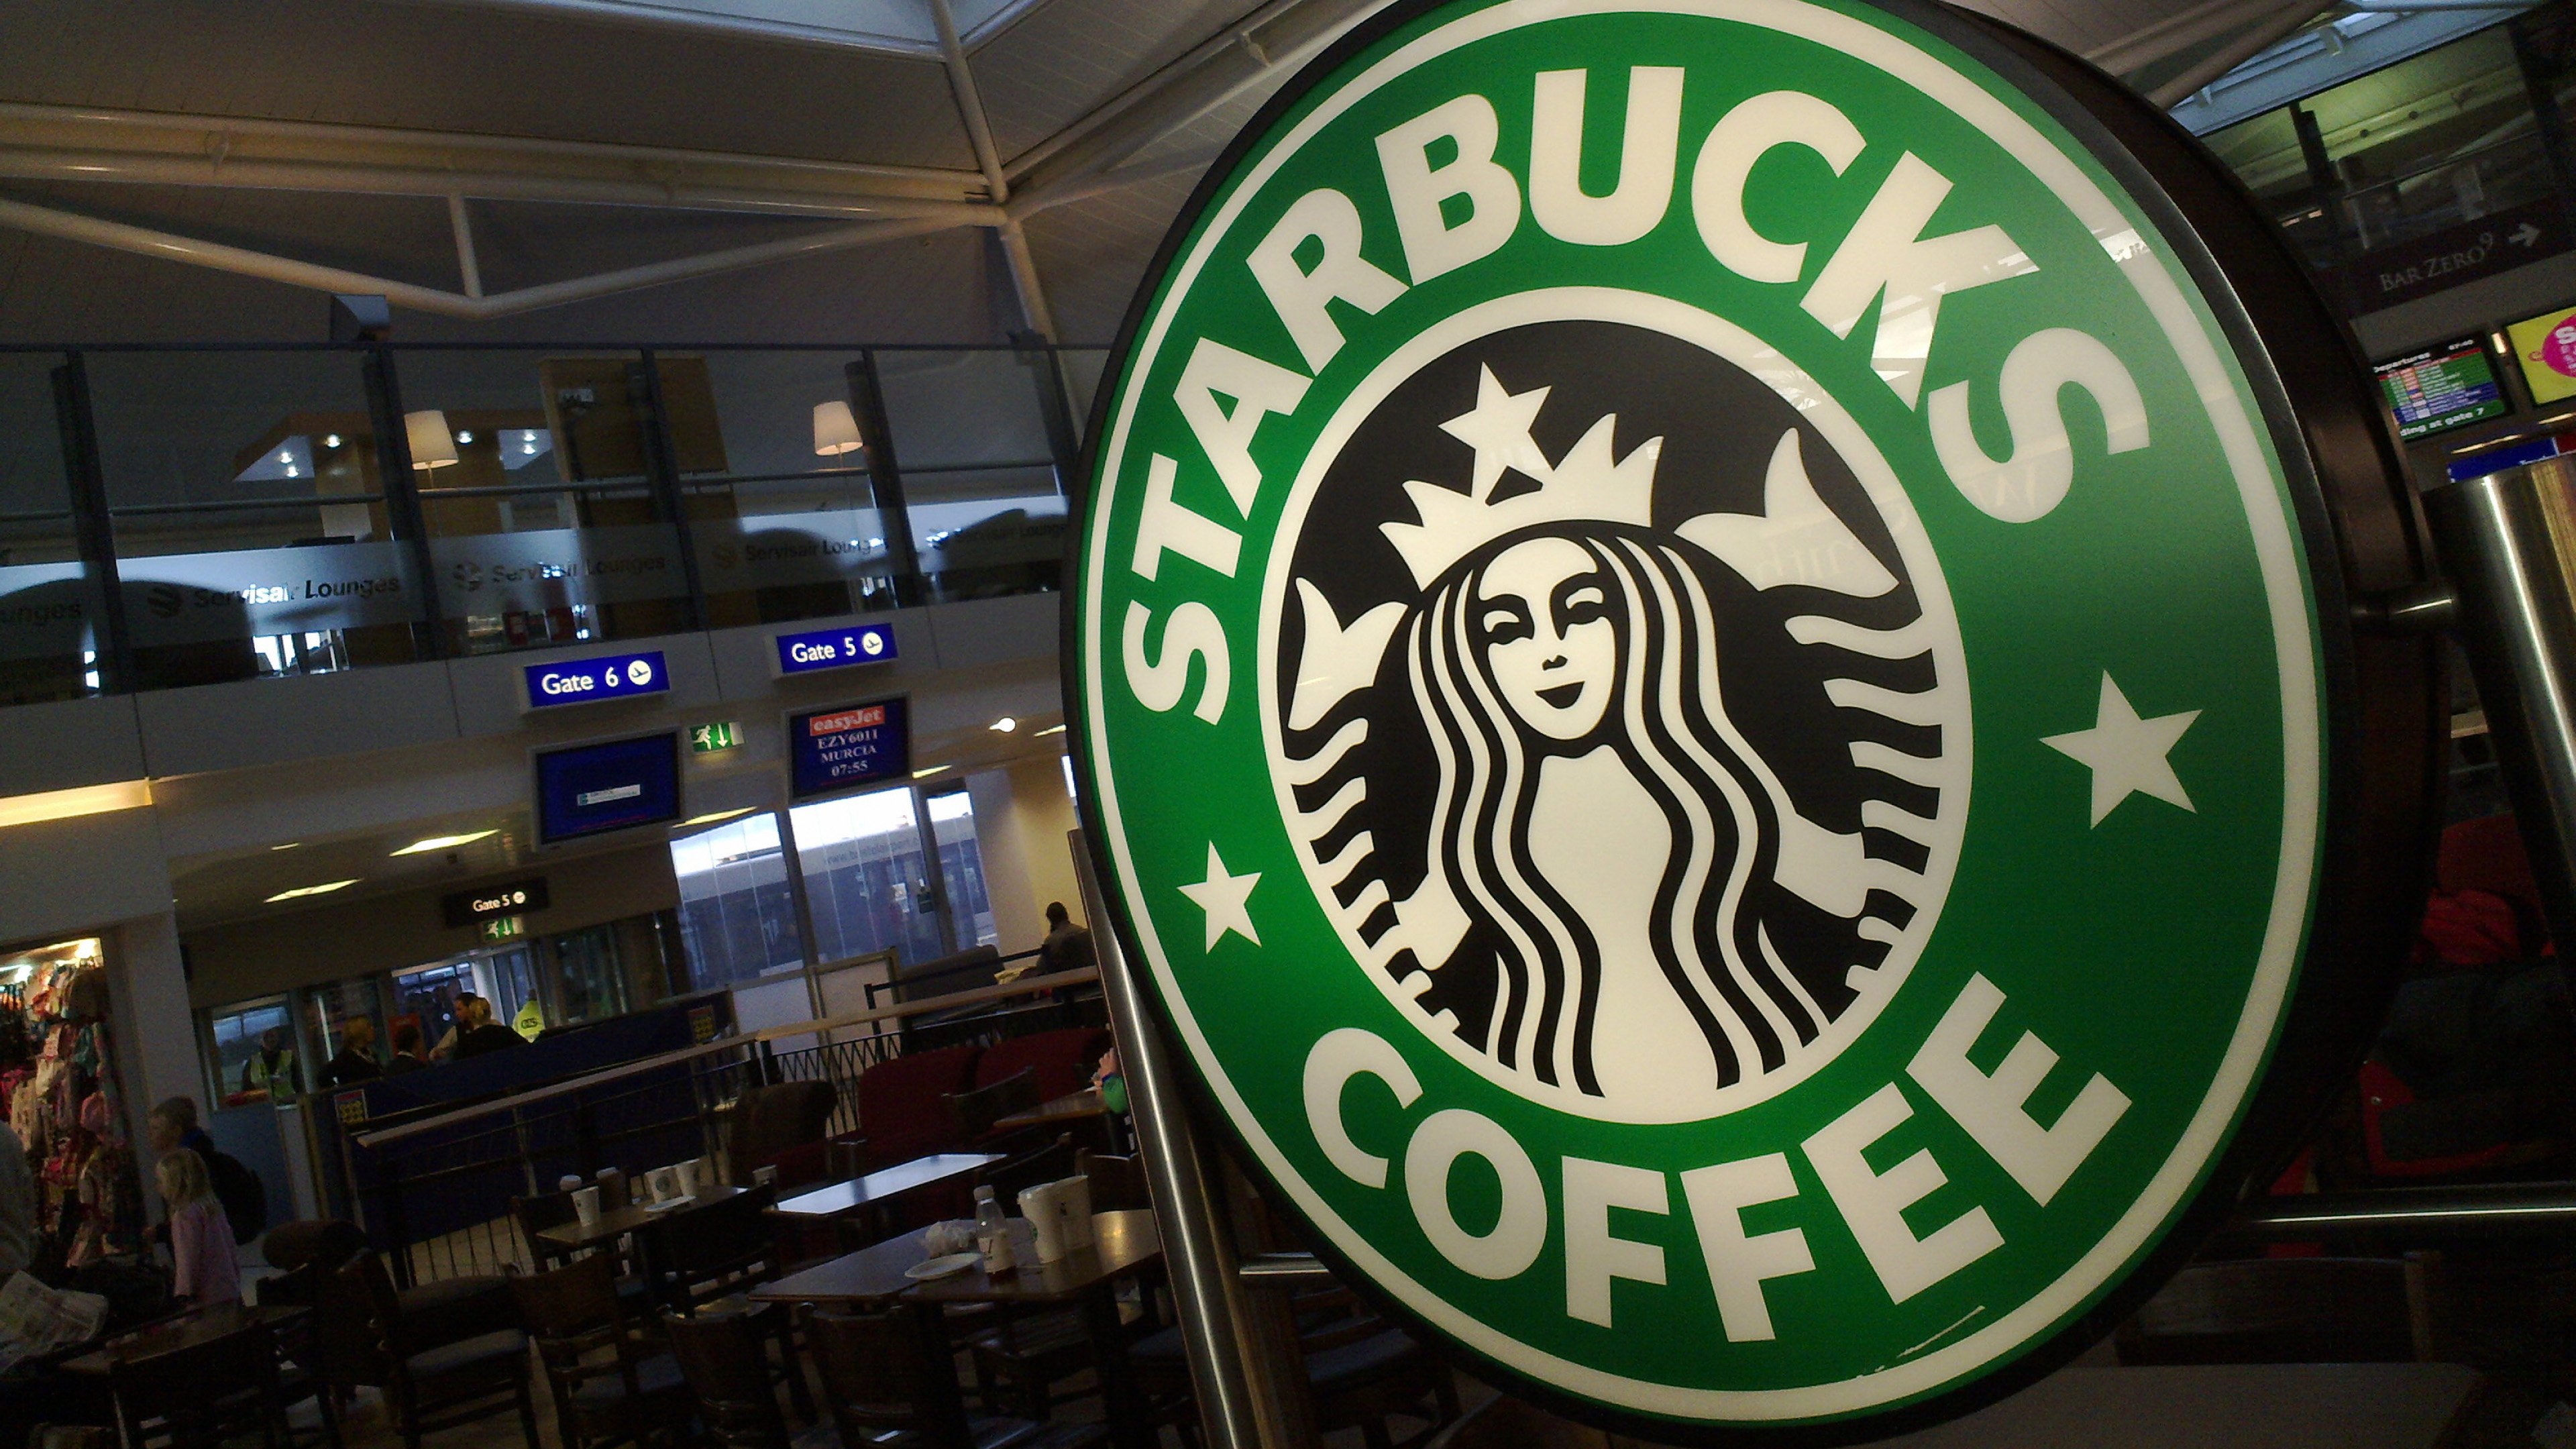 starbucks wallpaper with logo at coffee shop firm in close up hd wallpapers wallpapers. Black Bedroom Furniture Sets. Home Design Ideas